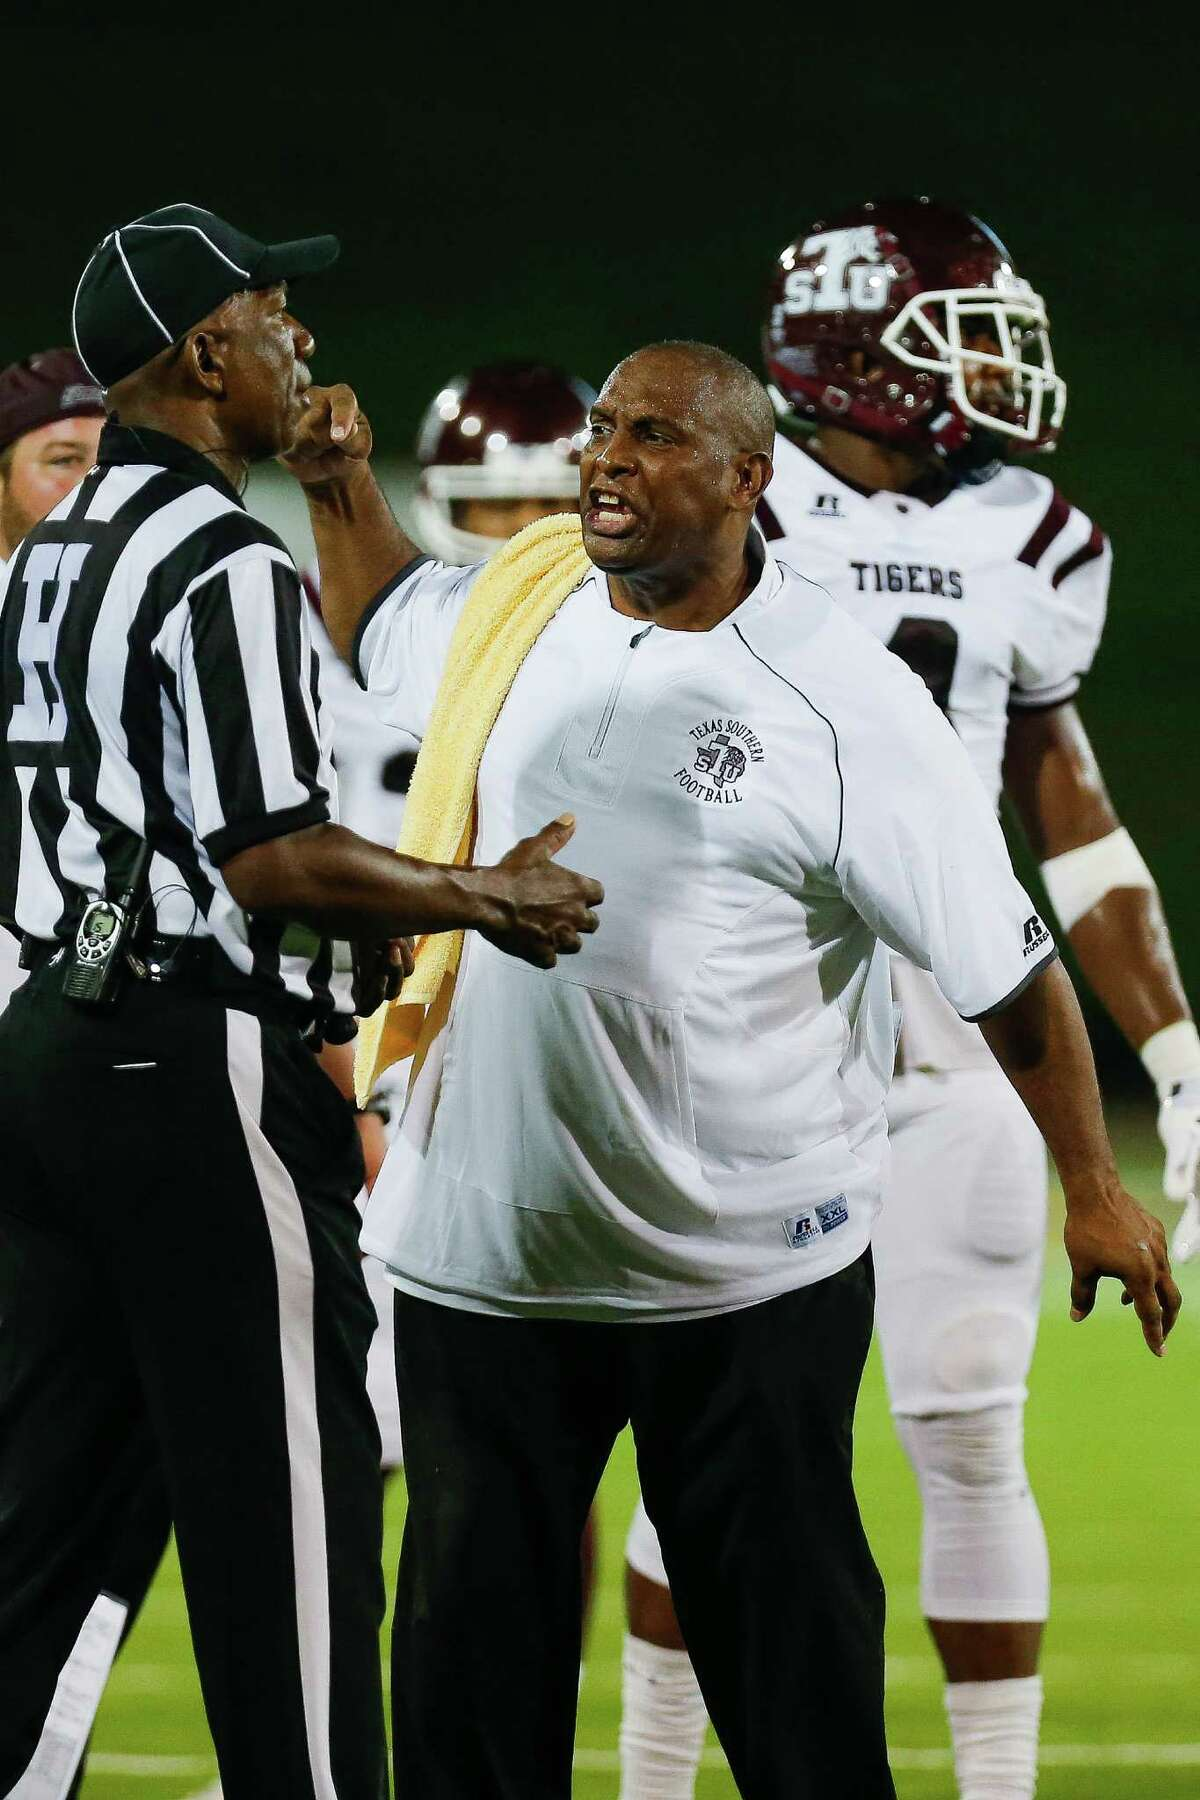 Texas Southern Tigers head coach Mike Haywood yells at a referee after a call for an illegal formation on a fake punt as the Prairie View Am Panthers take on the Texas Southern Tigers at Panther Stadium at Blackshear Field Sunday, September 4, 2016 in Prairie View.